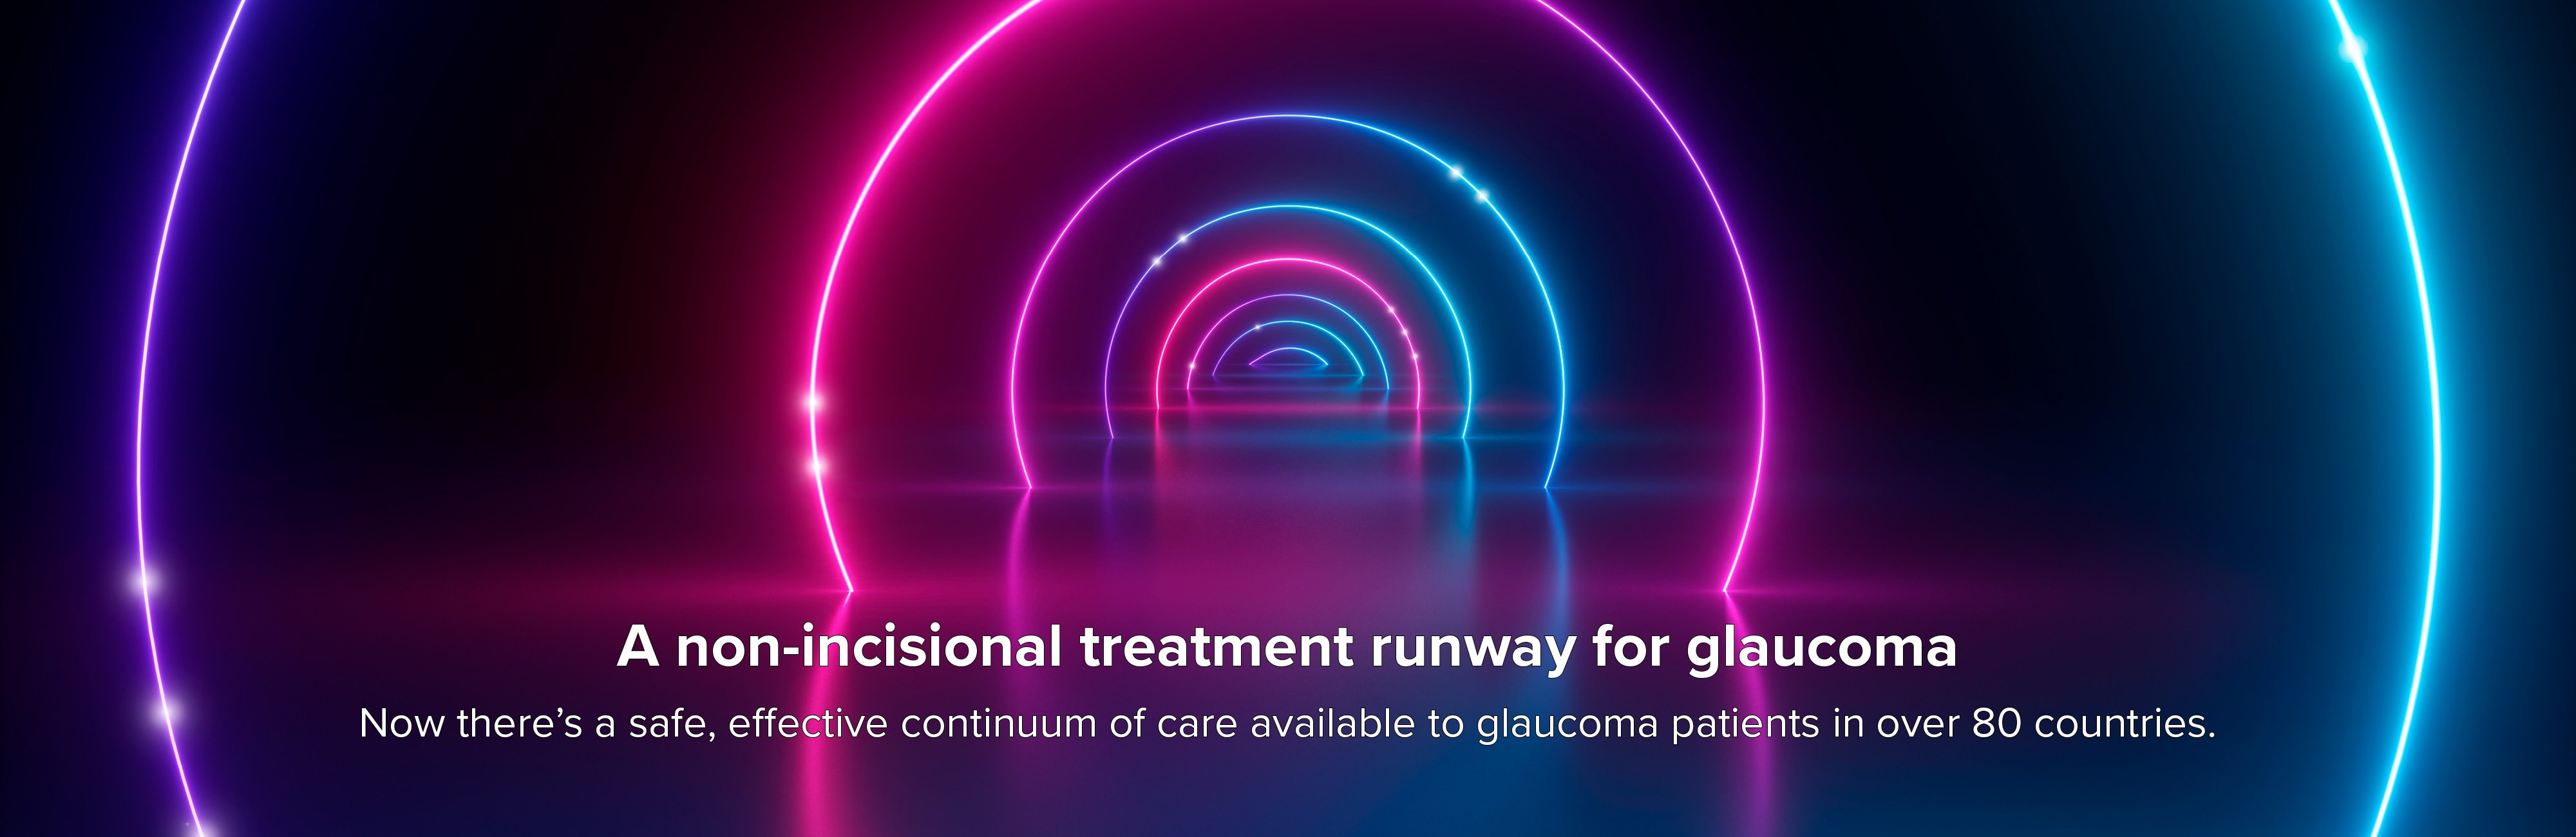 A non-incisional treatment runway for glaucoma